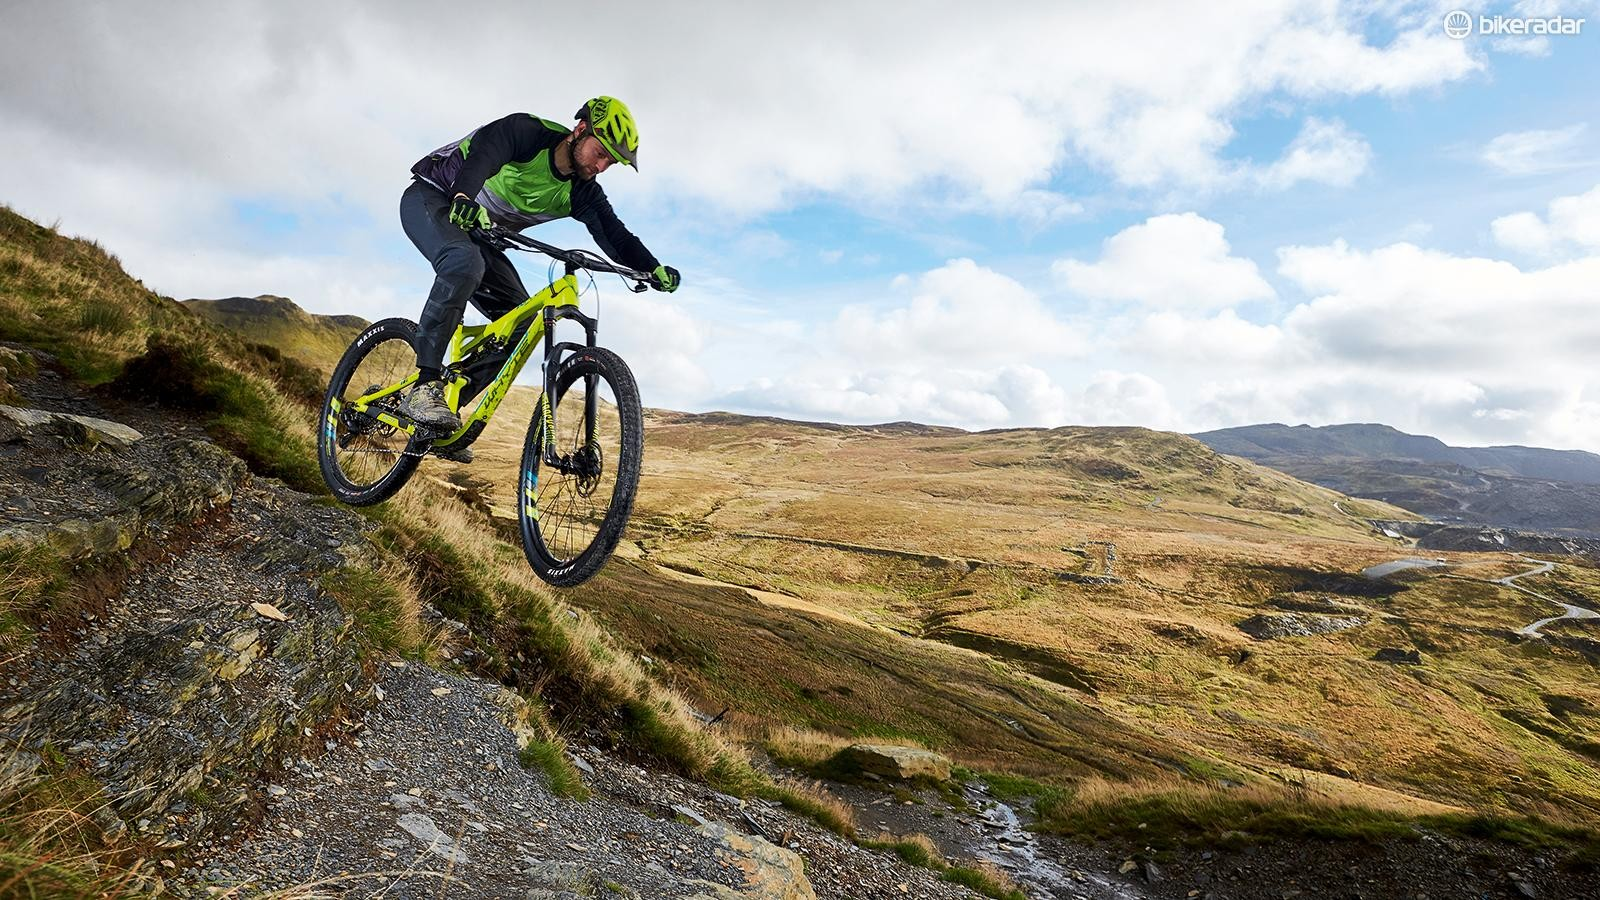 The Whyte's confidence-inspiringgeometry and supple suspensionmake for an immensely capablerough terrain tamer